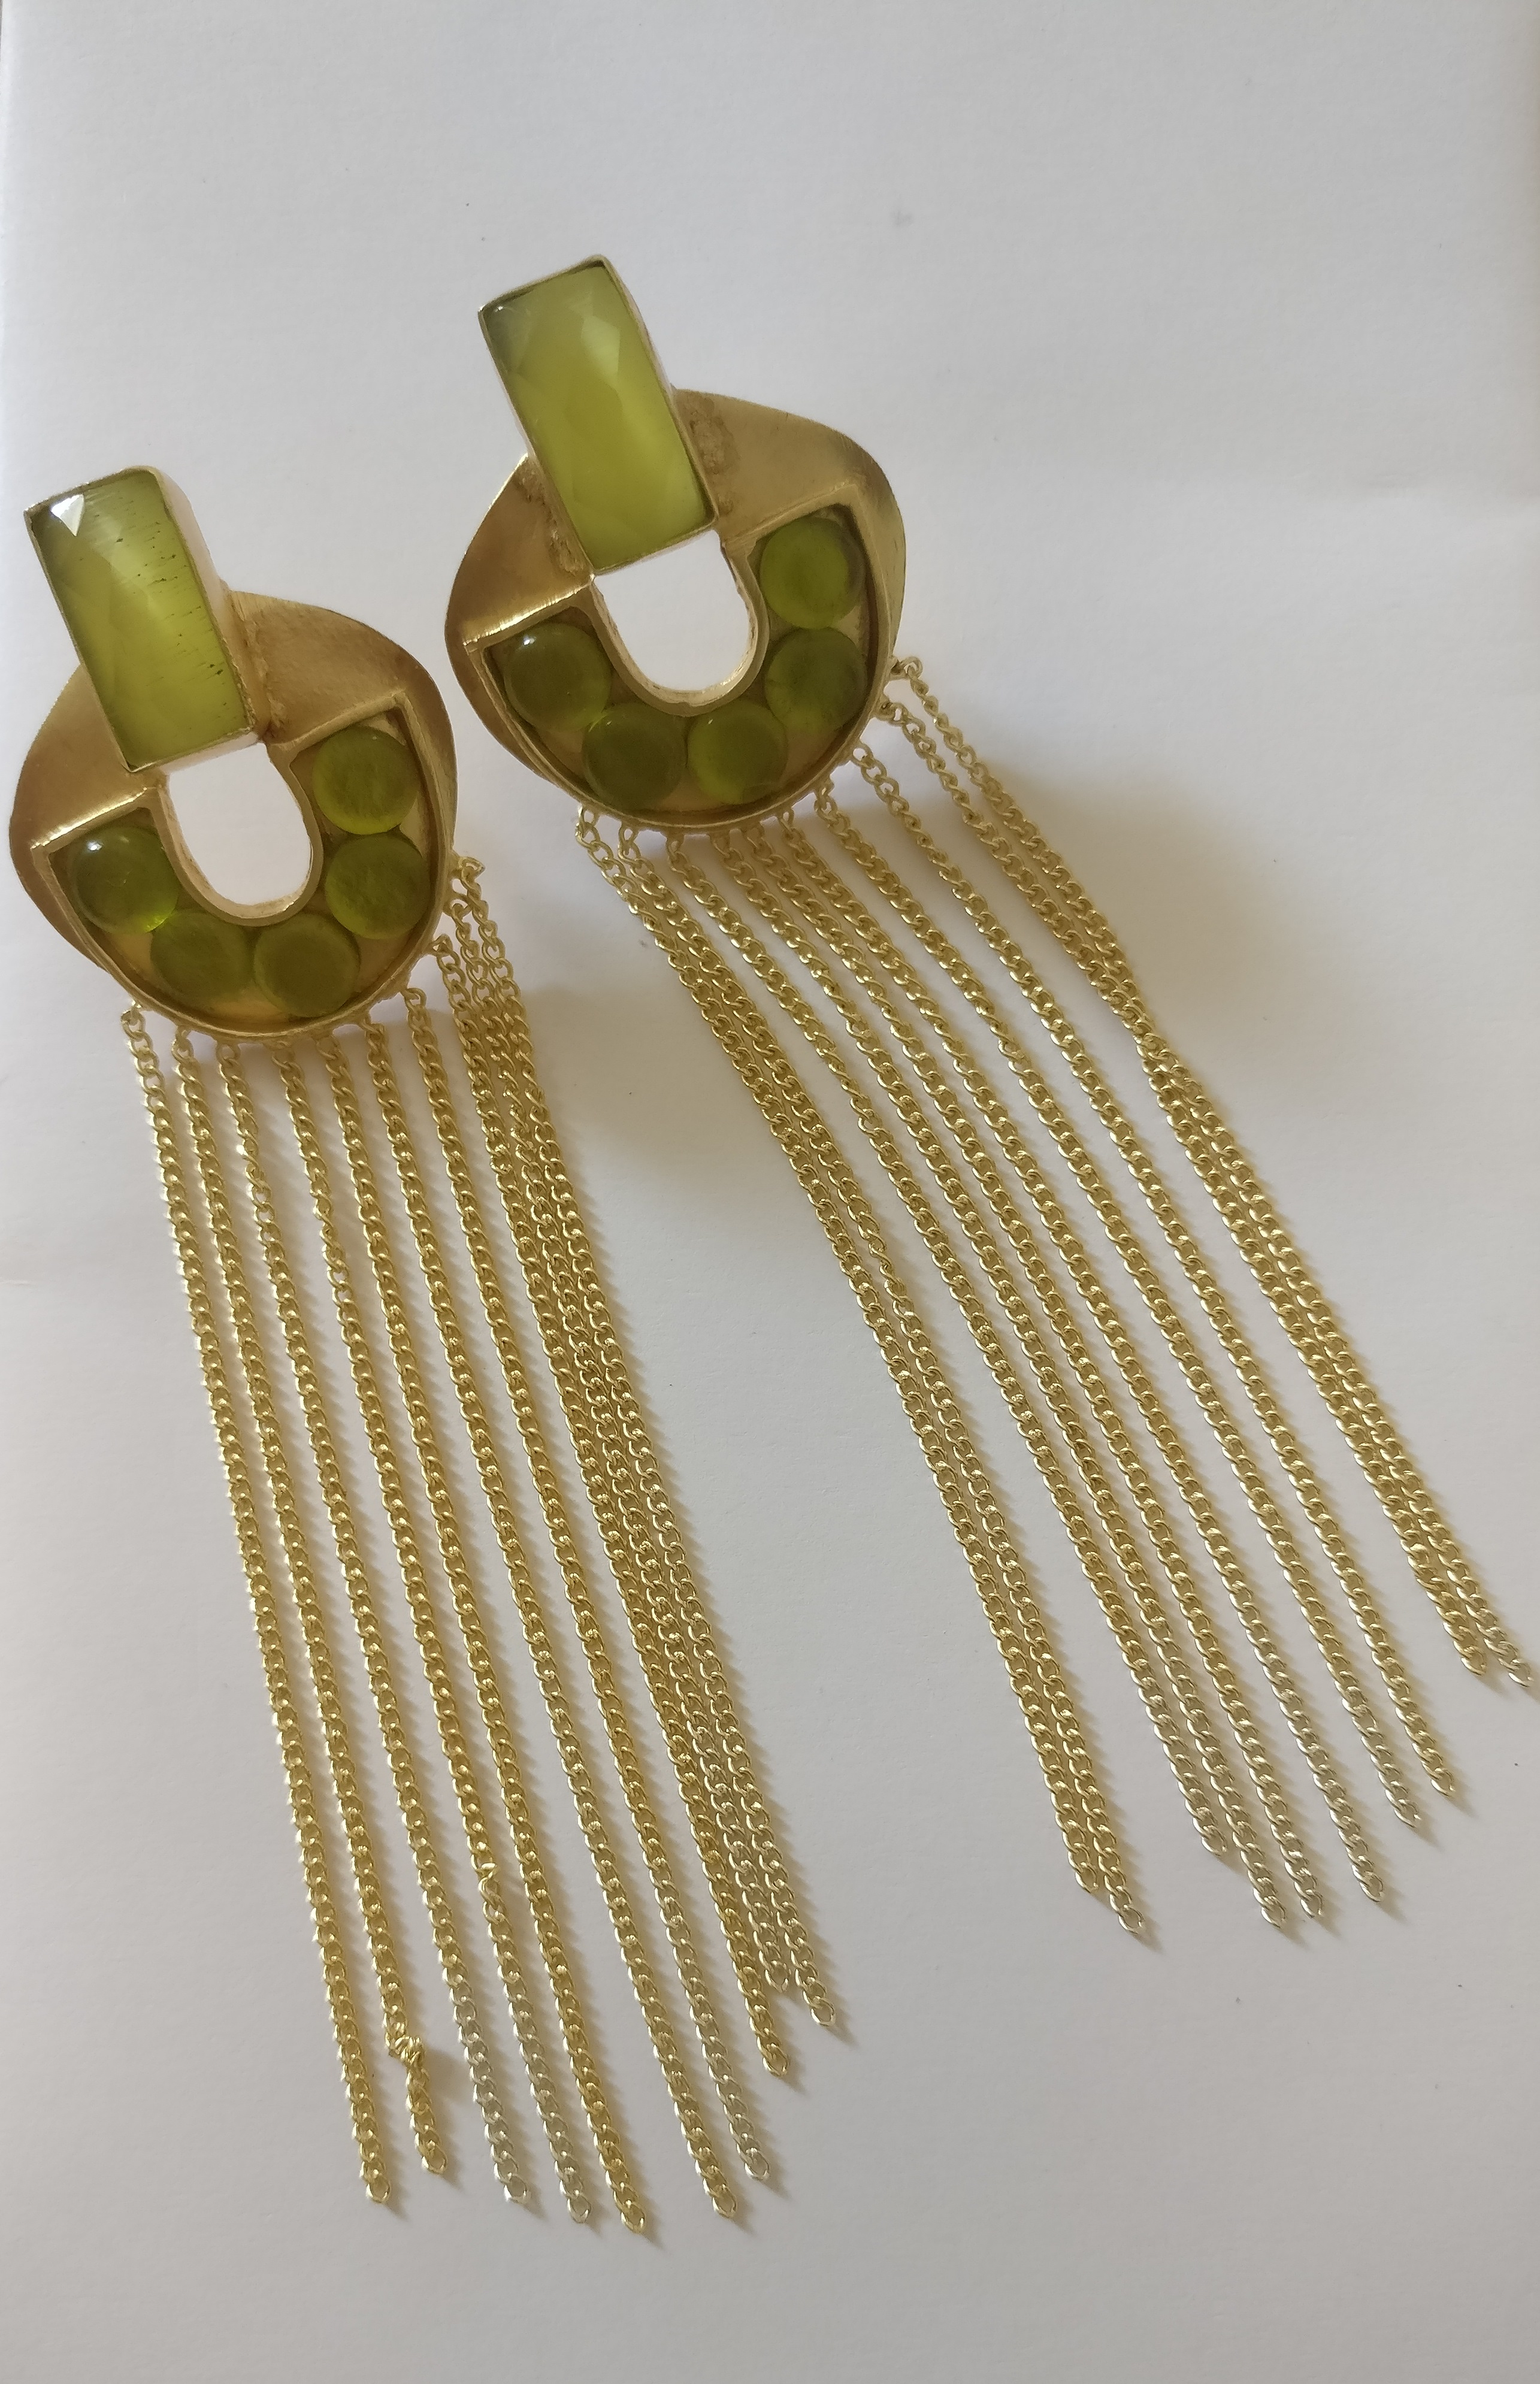 4a82ef1e4 Green stones with long gold chain tassel earrings - Jaipur Handicrafts &  Fashions - 2579189